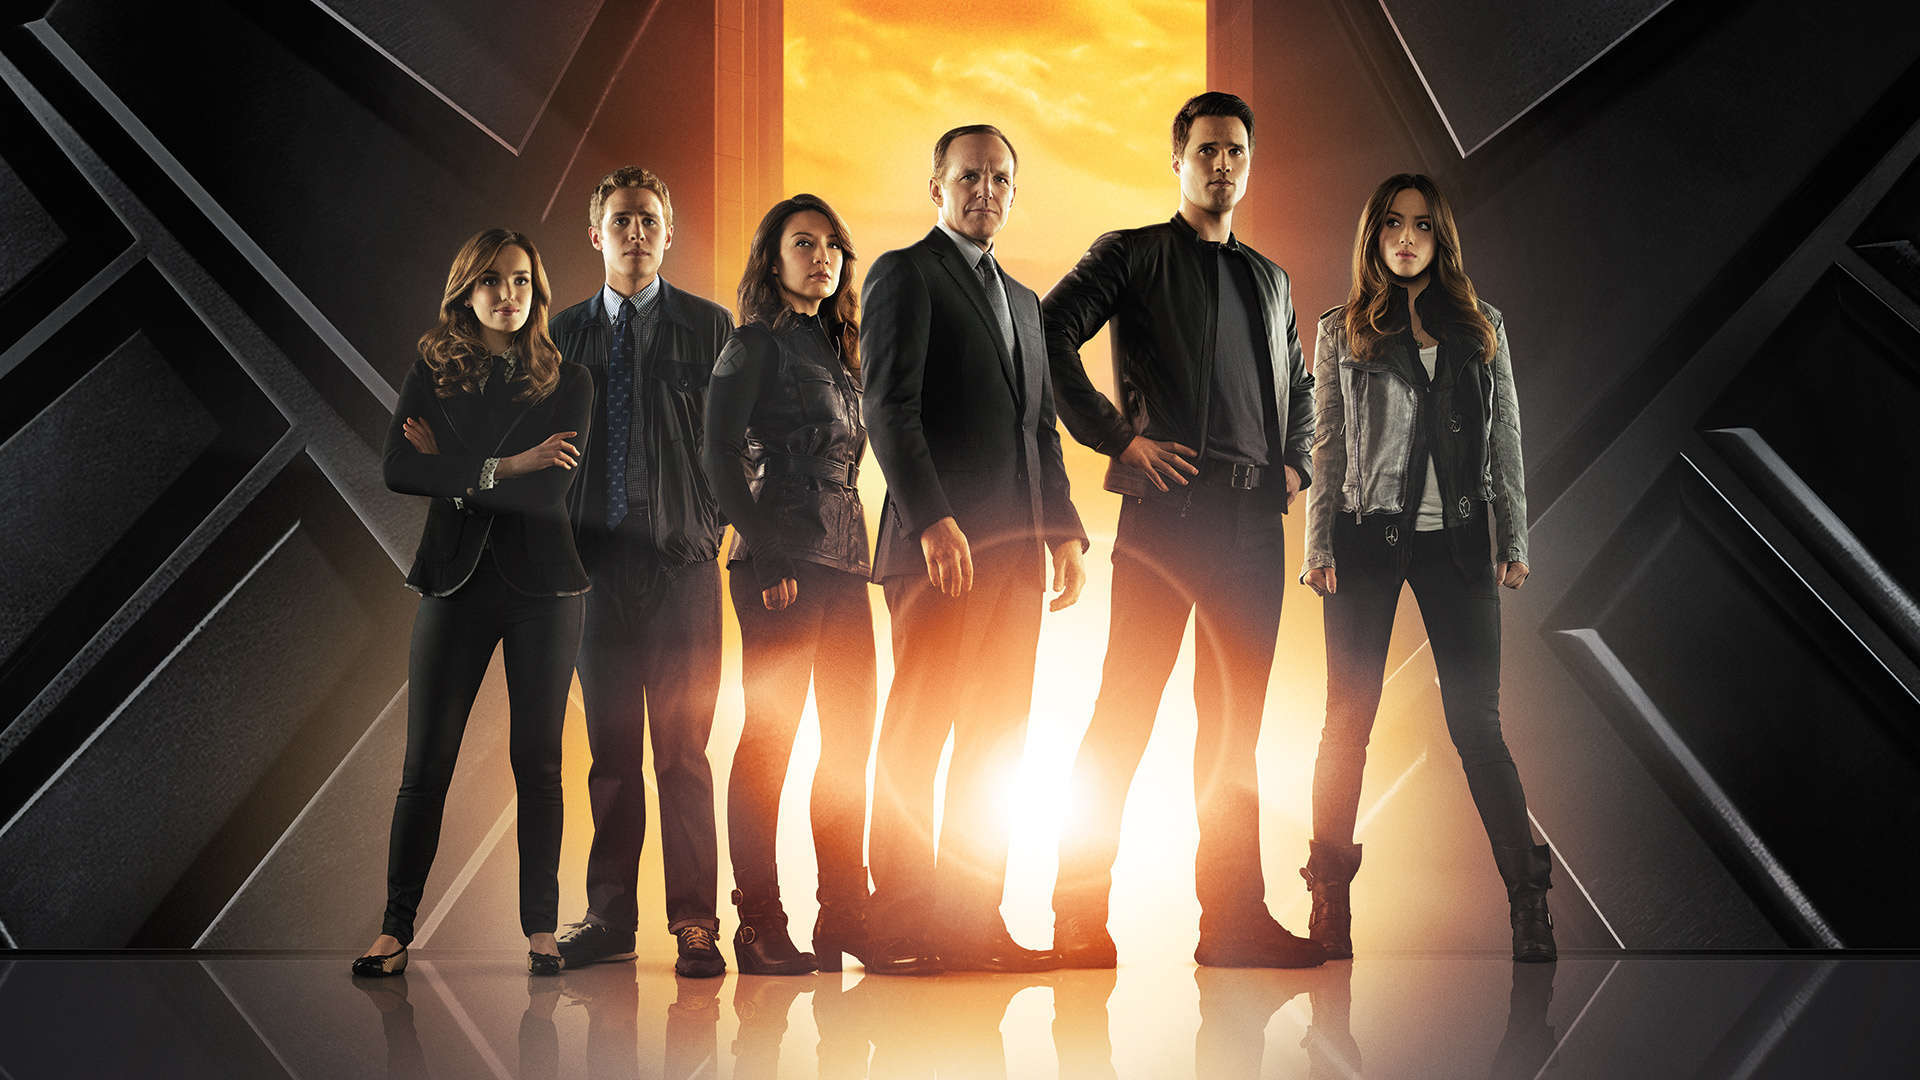 Wallpaper Agents Of Shield HD Wallpaper Upload at July 20 2014 by 1920x1080